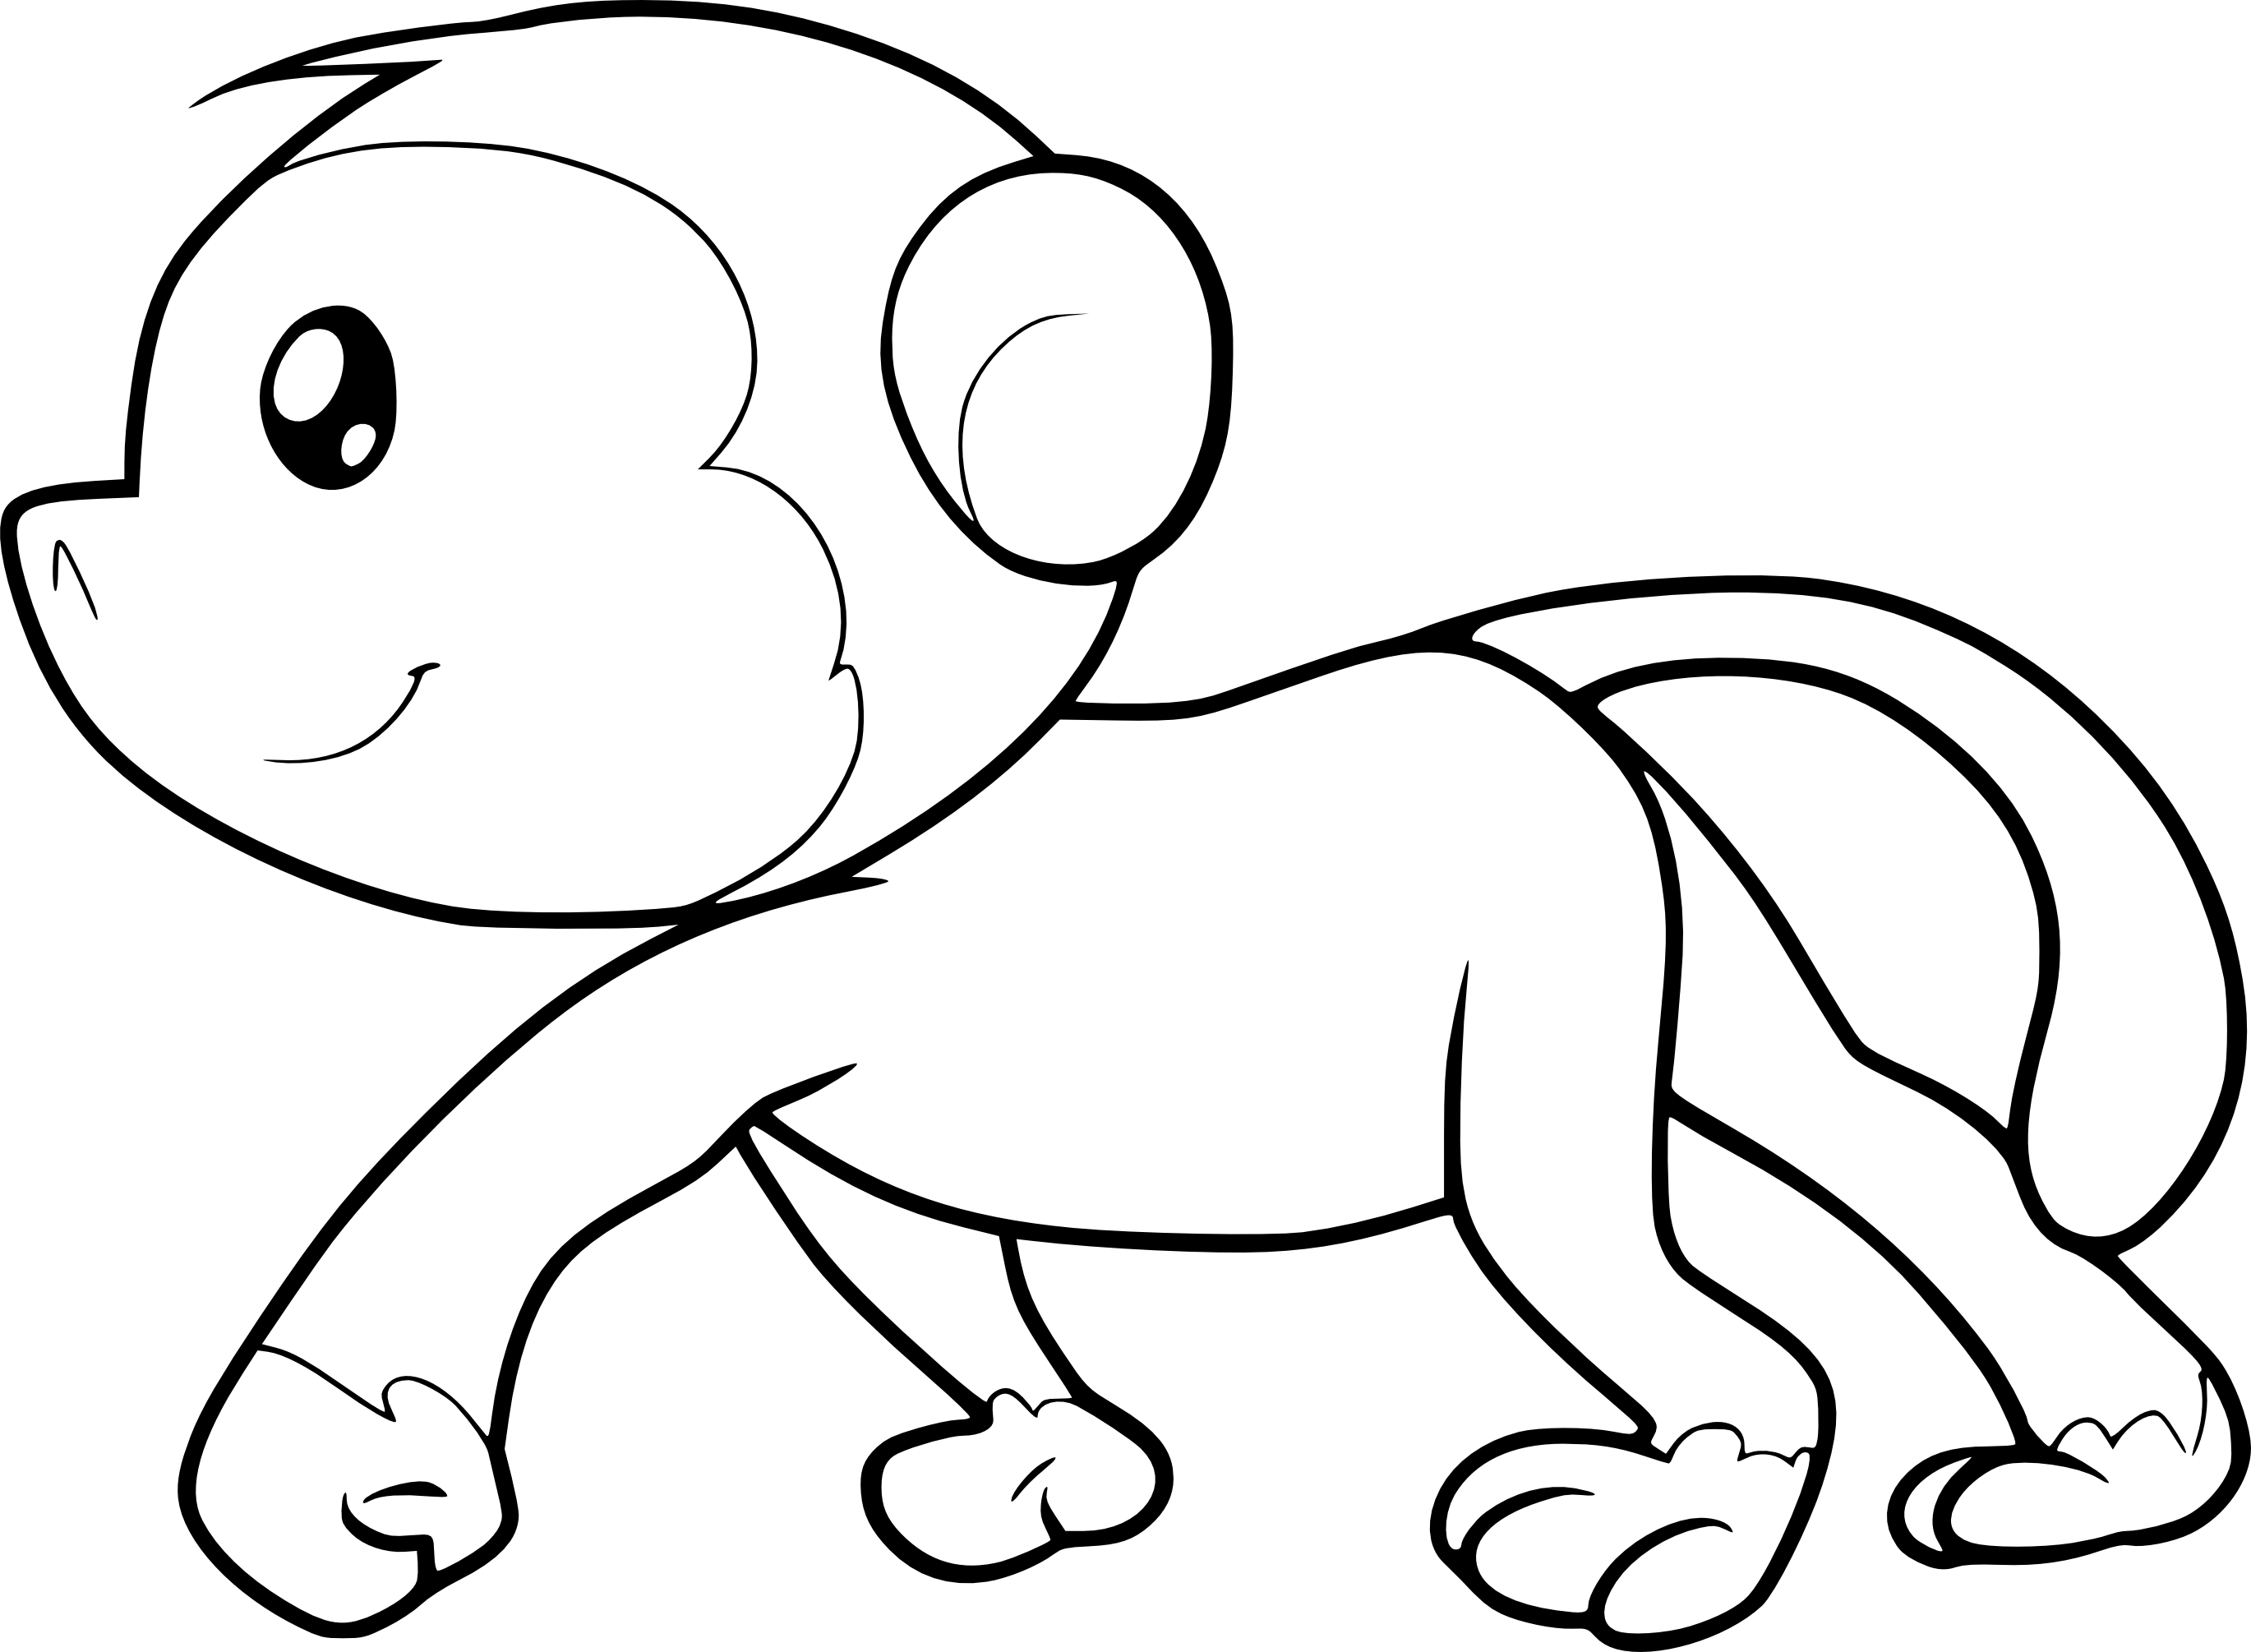 cute monkey coloring 35 ideas for cute simple monkey coloring pages twin monkey cute coloring